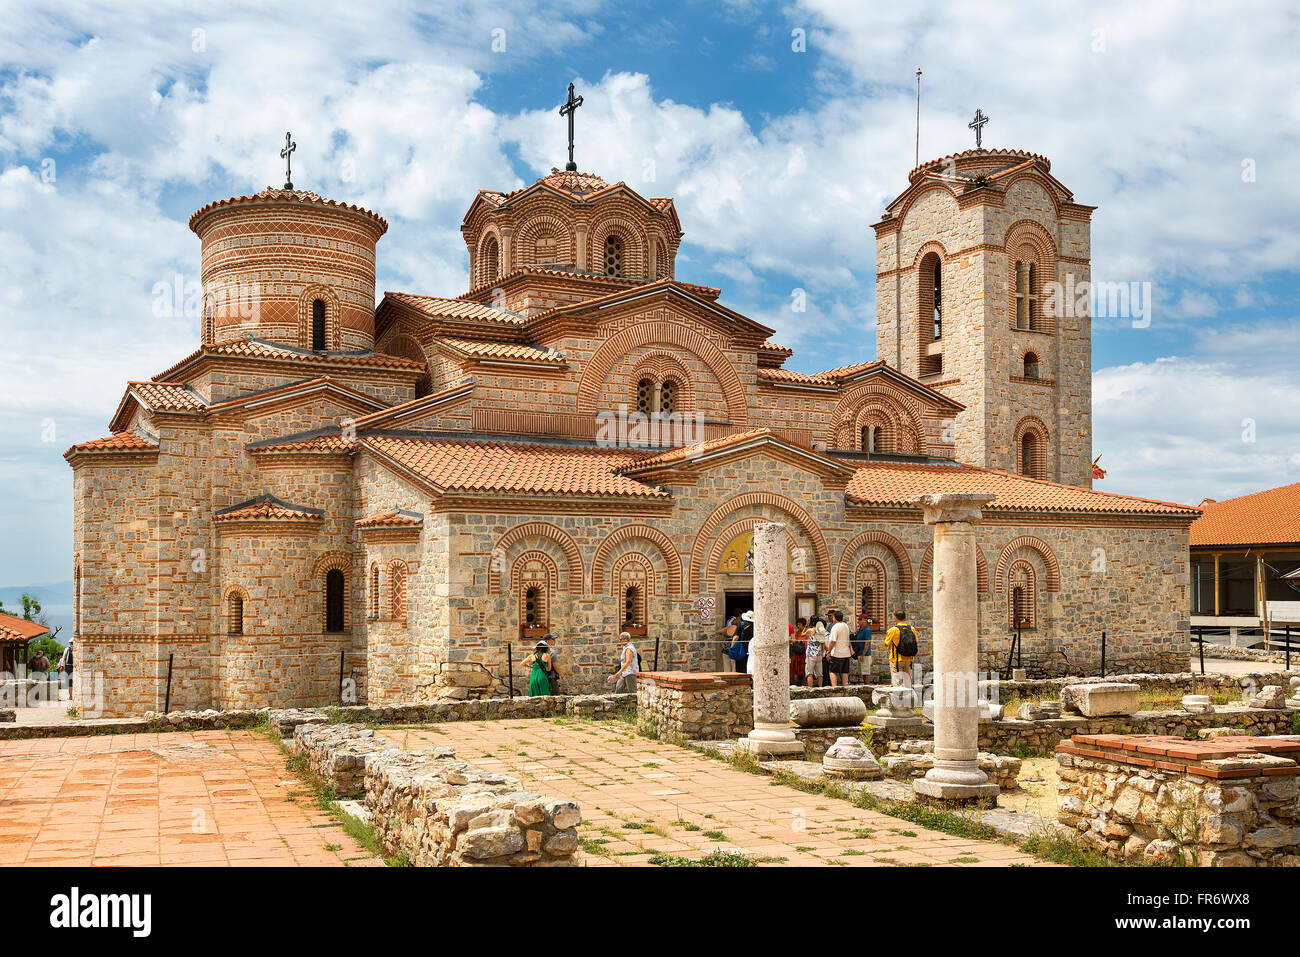 Republic of Macedonia, Ohrid, the site of Plaochnik, the Byzantine church of Clement - Stock Image